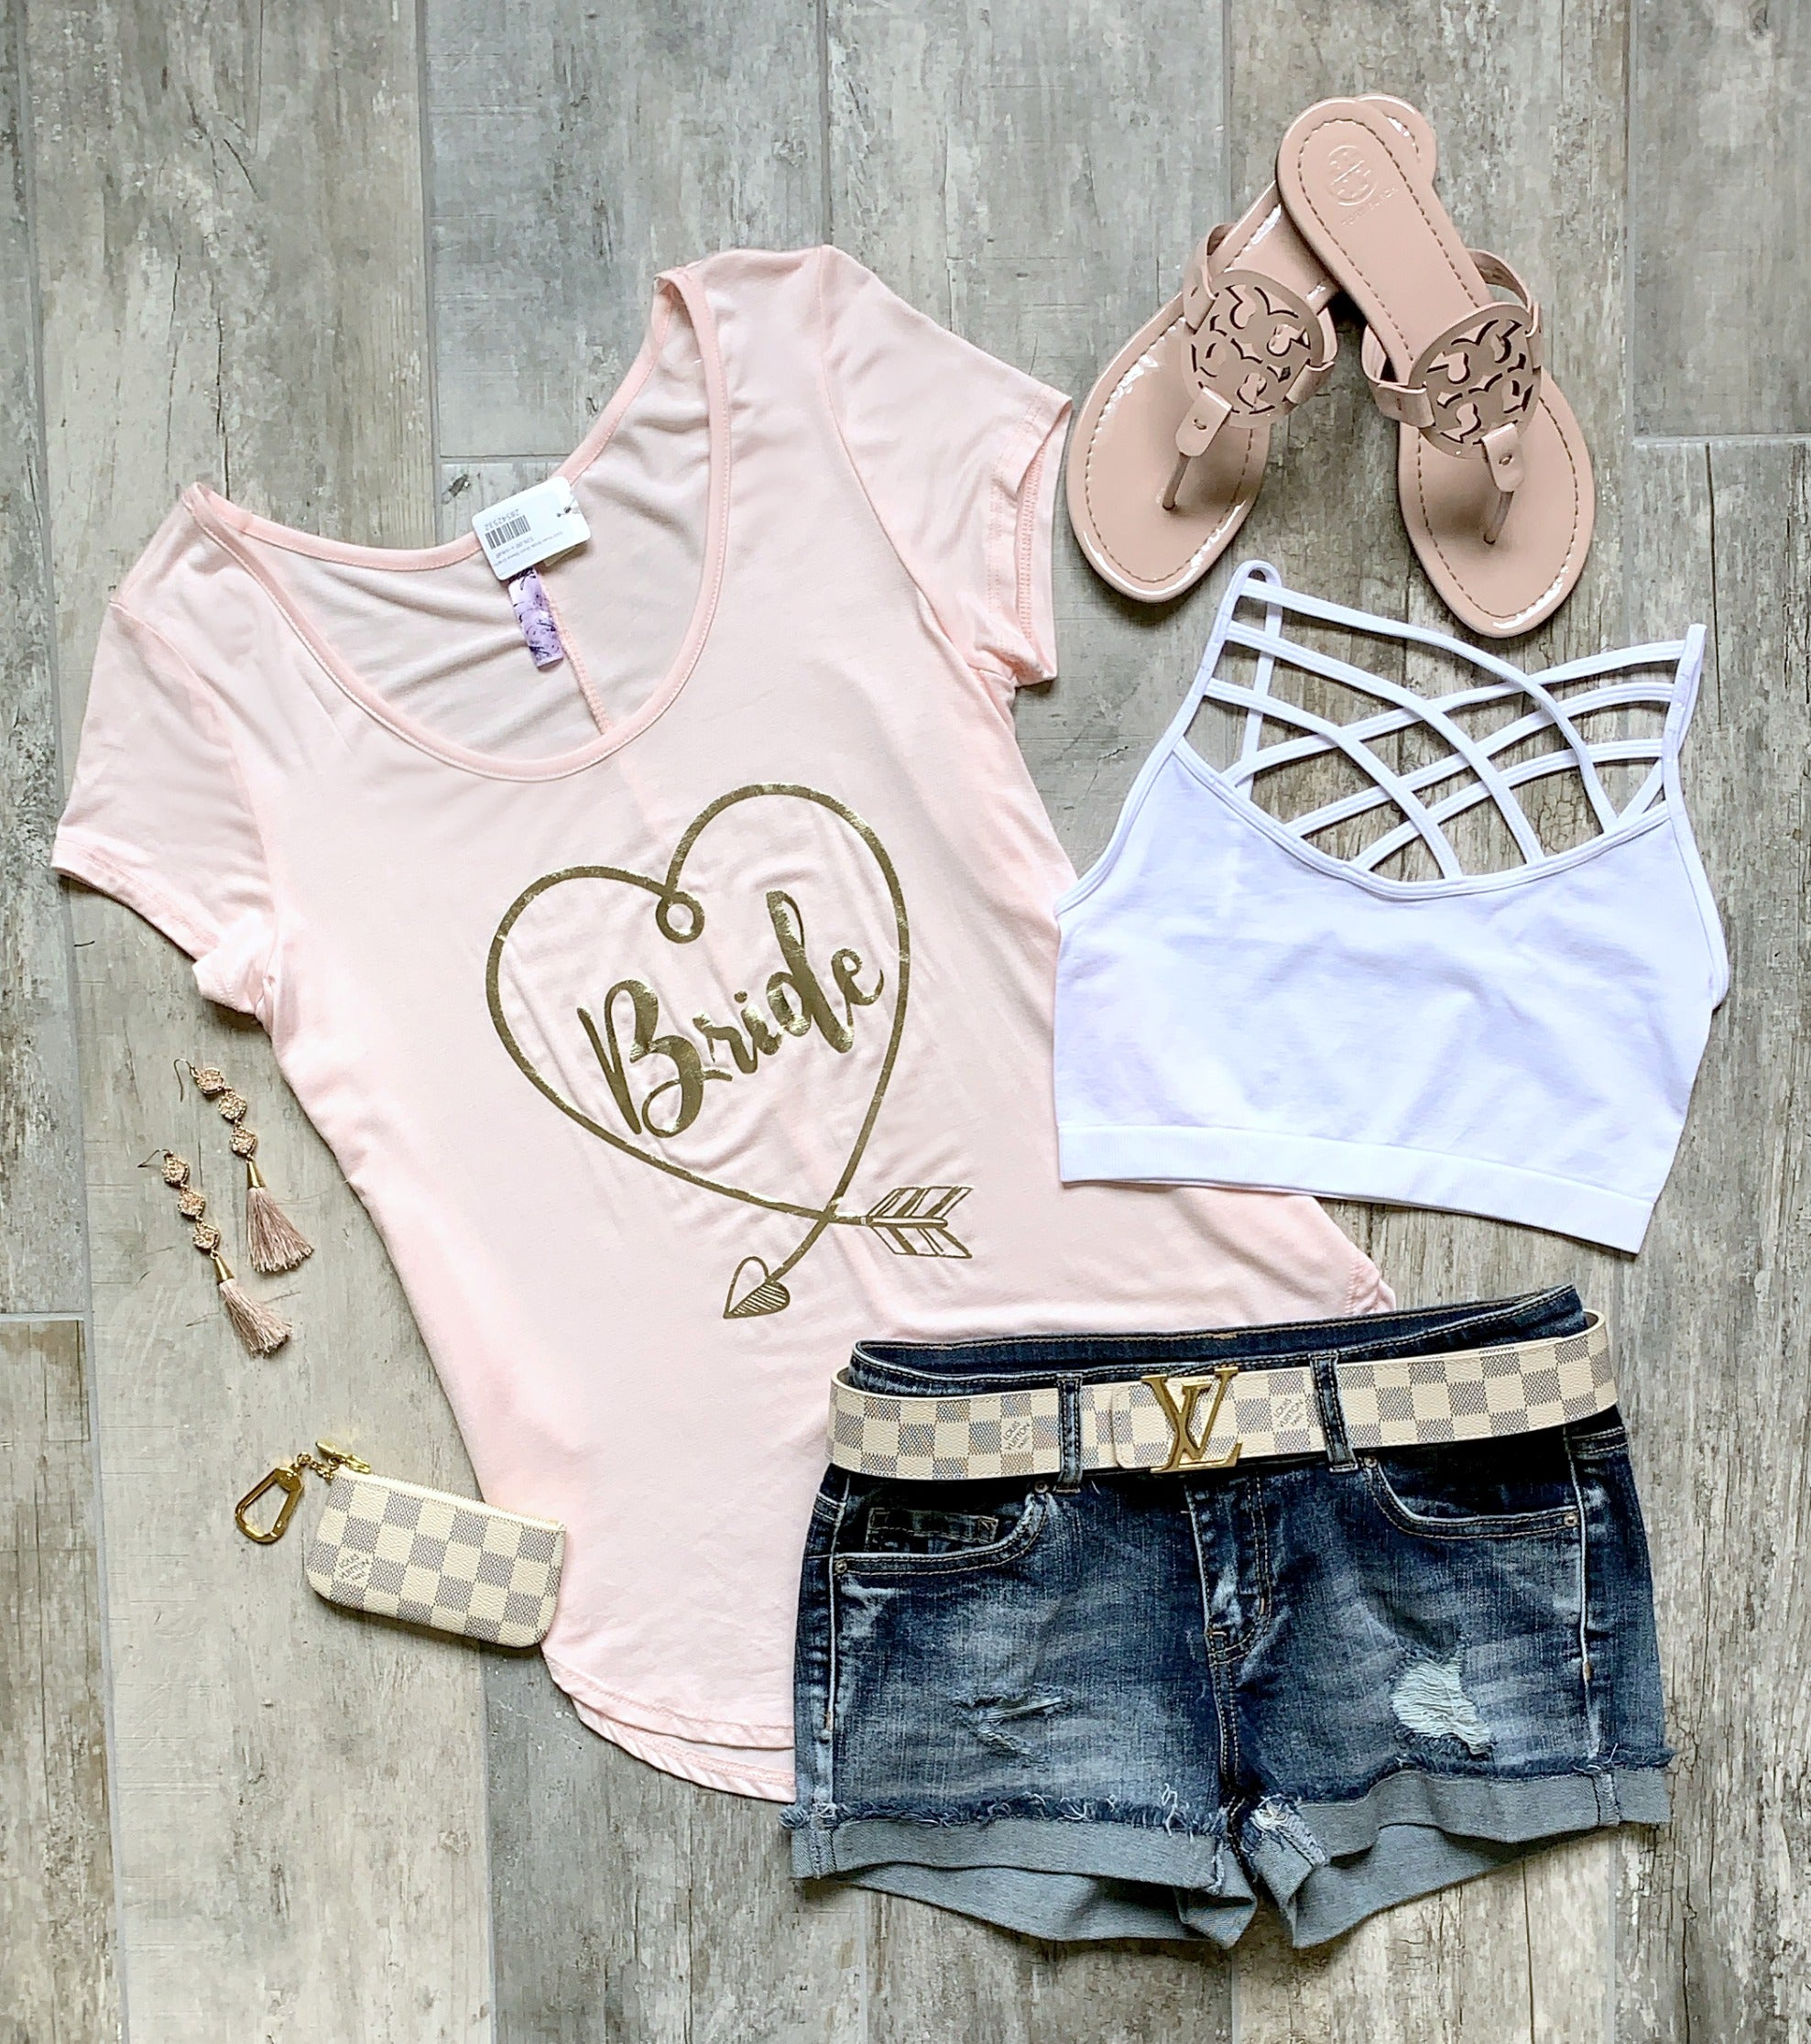 Gold Heart Bride Short Sleeve Graphic Tee: Blush